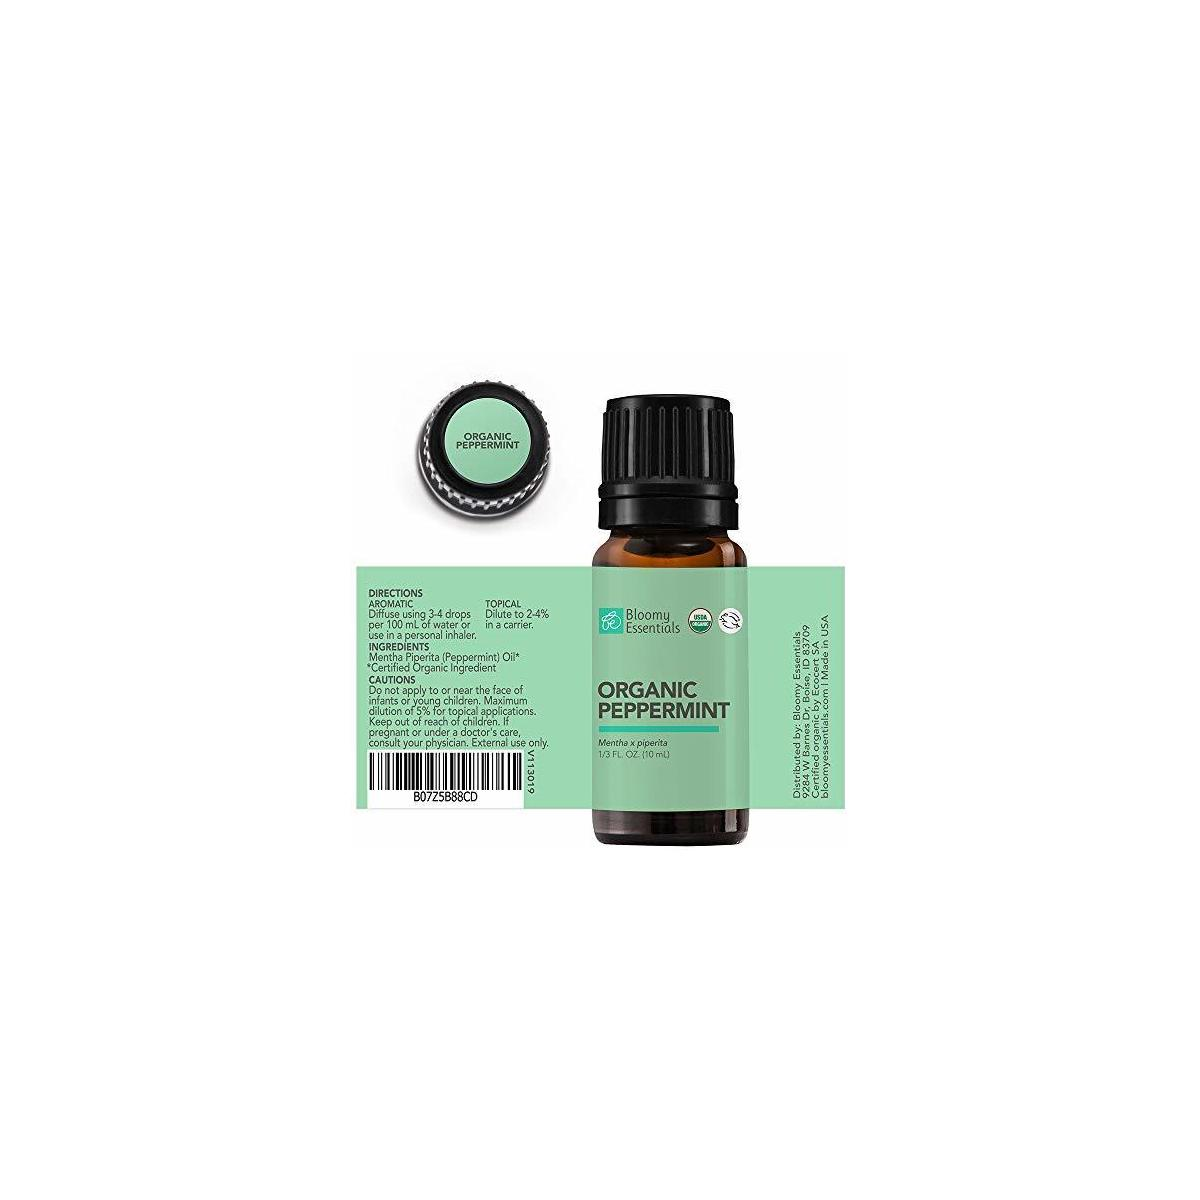 Bloomy Essentials Organic Peppermint Essential Oil 10 mL (1/3 oz) - USDA Certified Organic - Mentha Piperita to Repel Mice Spiders - 100% Pure, Undiluted, Therapeutic Grade